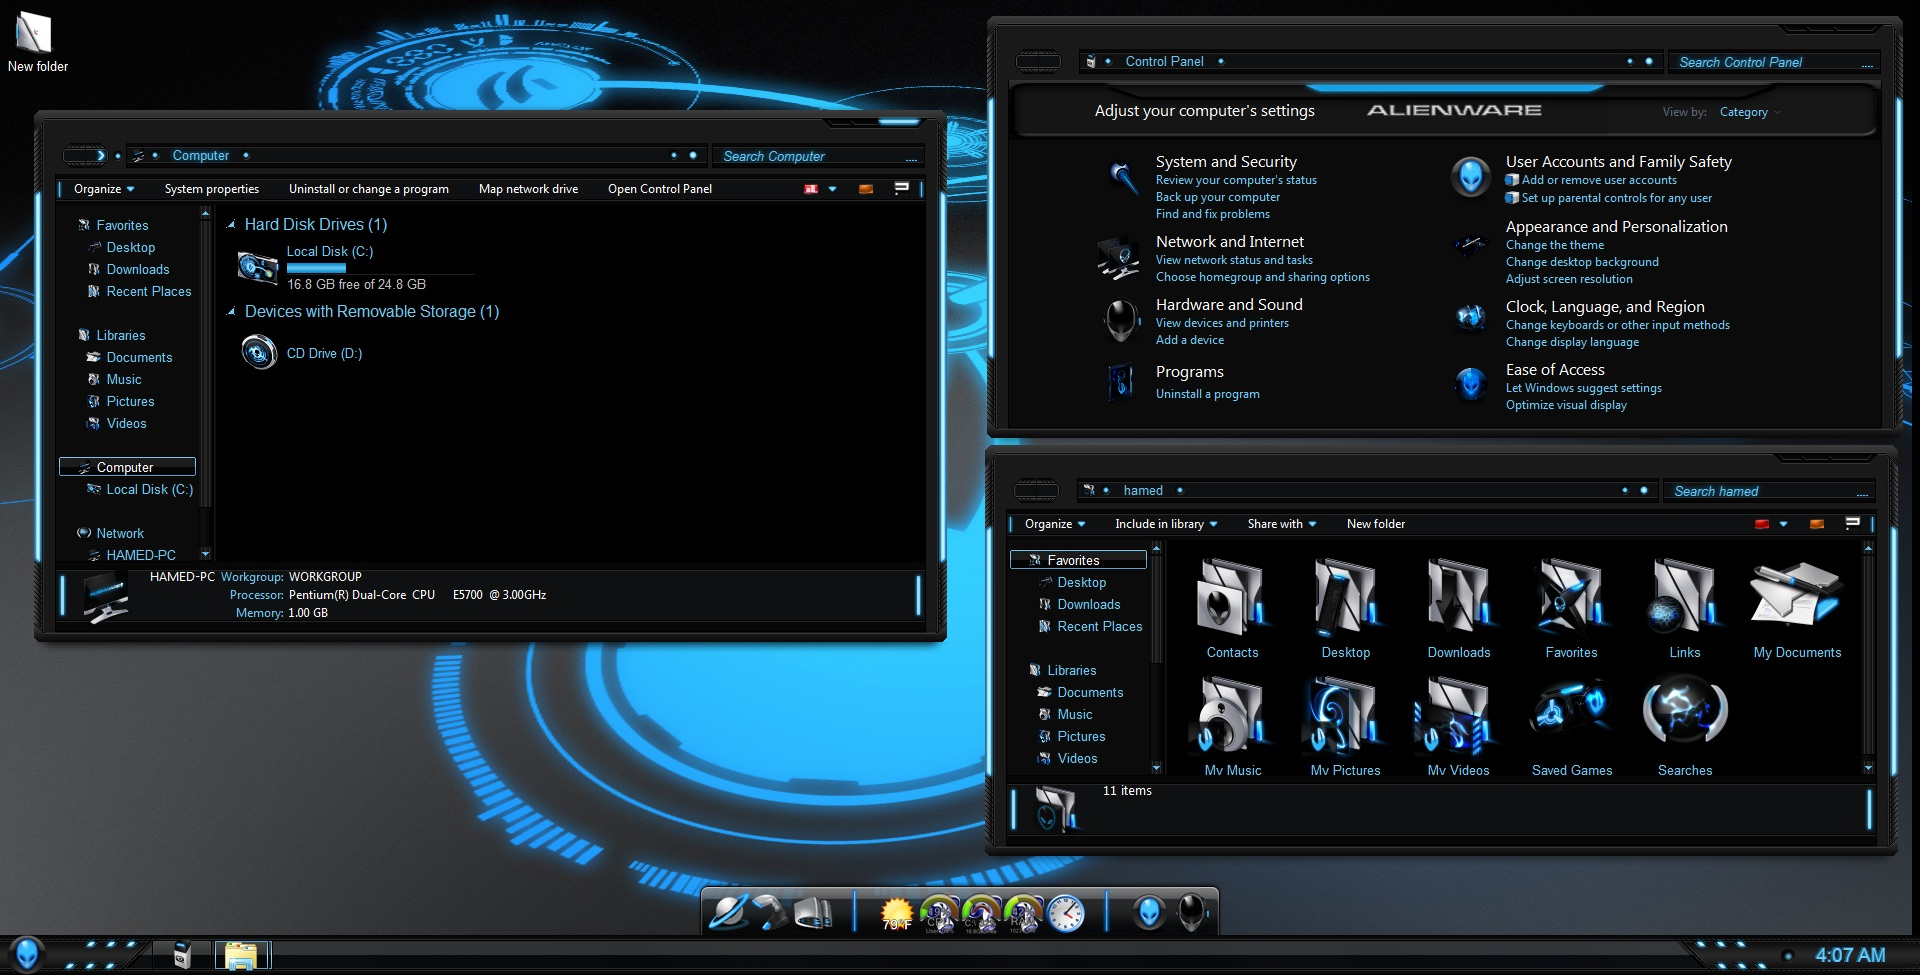 gratuitement le theme alienware pour windows 7